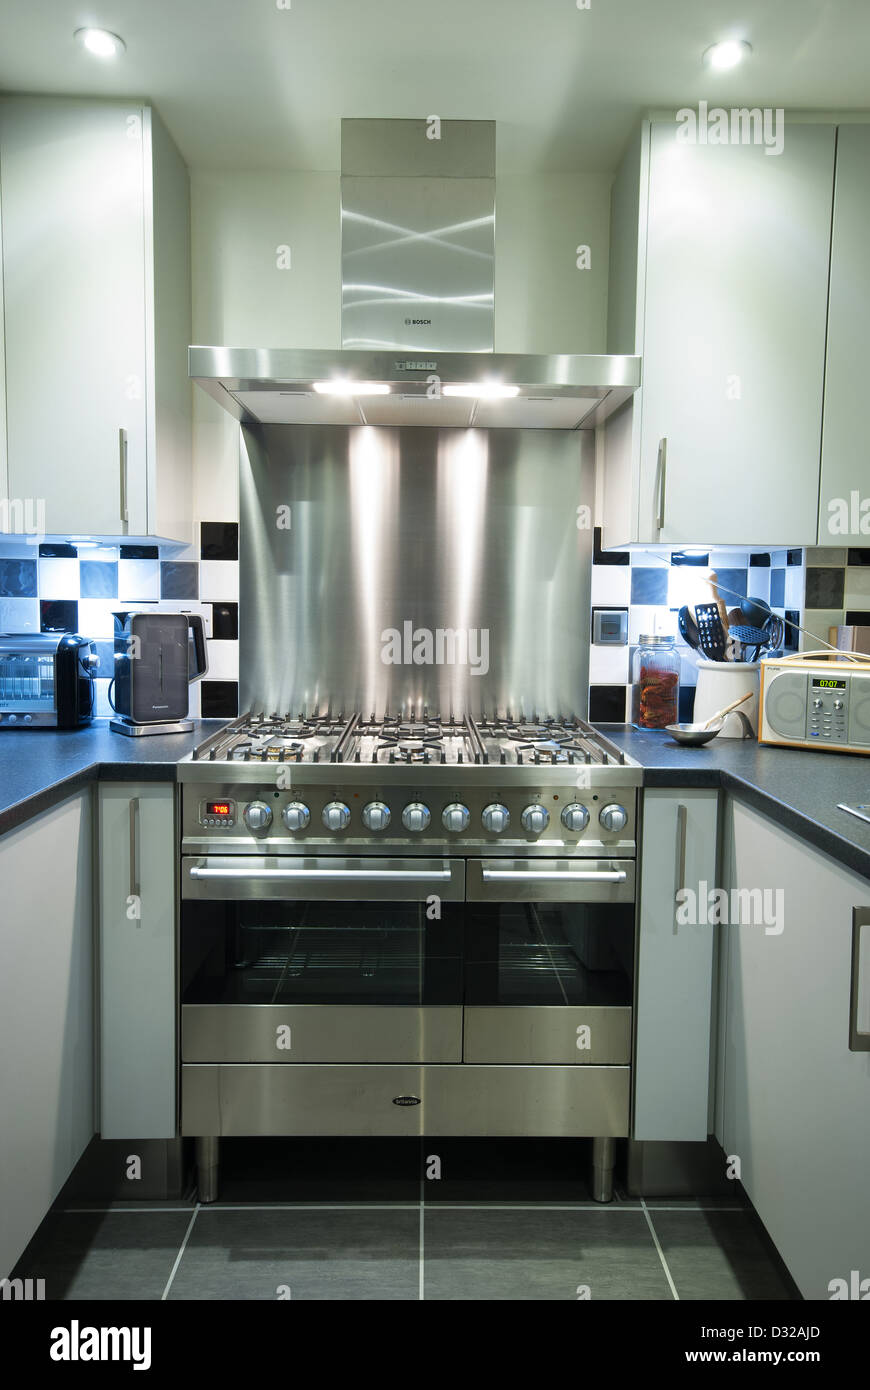 a modern gas electric range cooker with extractor and. Black Bedroom Furniture Sets. Home Design Ideas